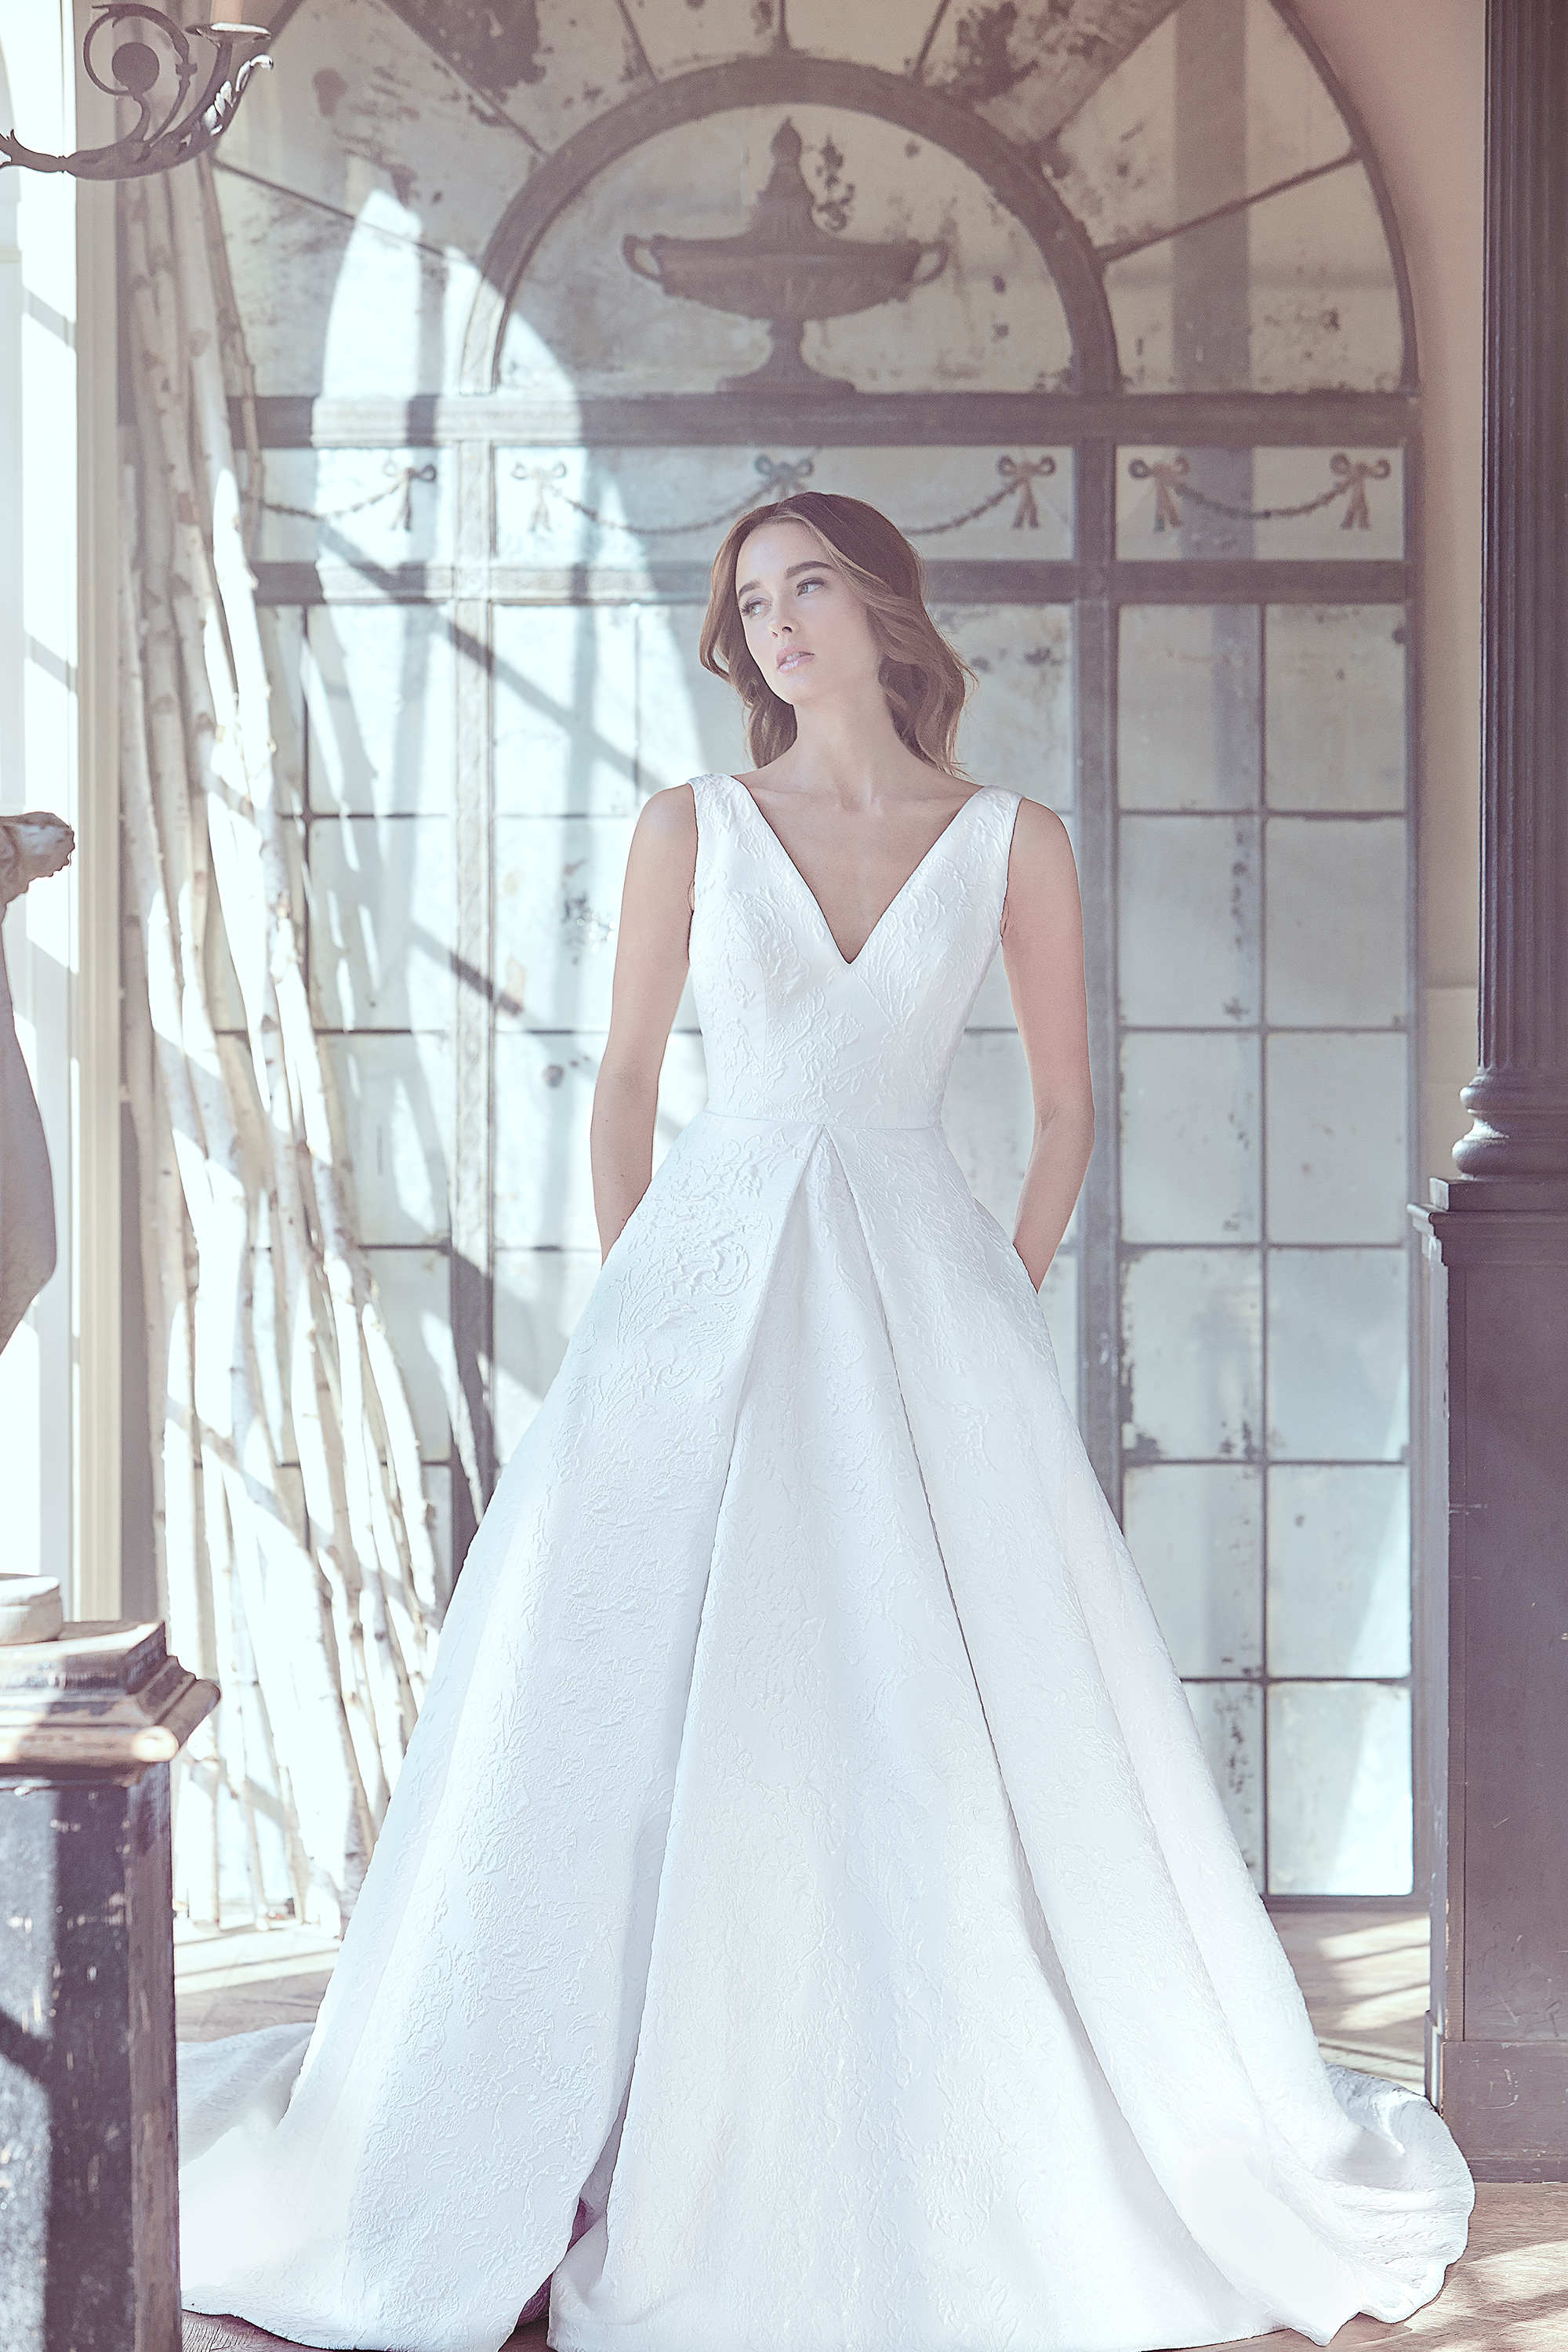 sareh nouri wedding dress spring 2019 v-neck a-line gown